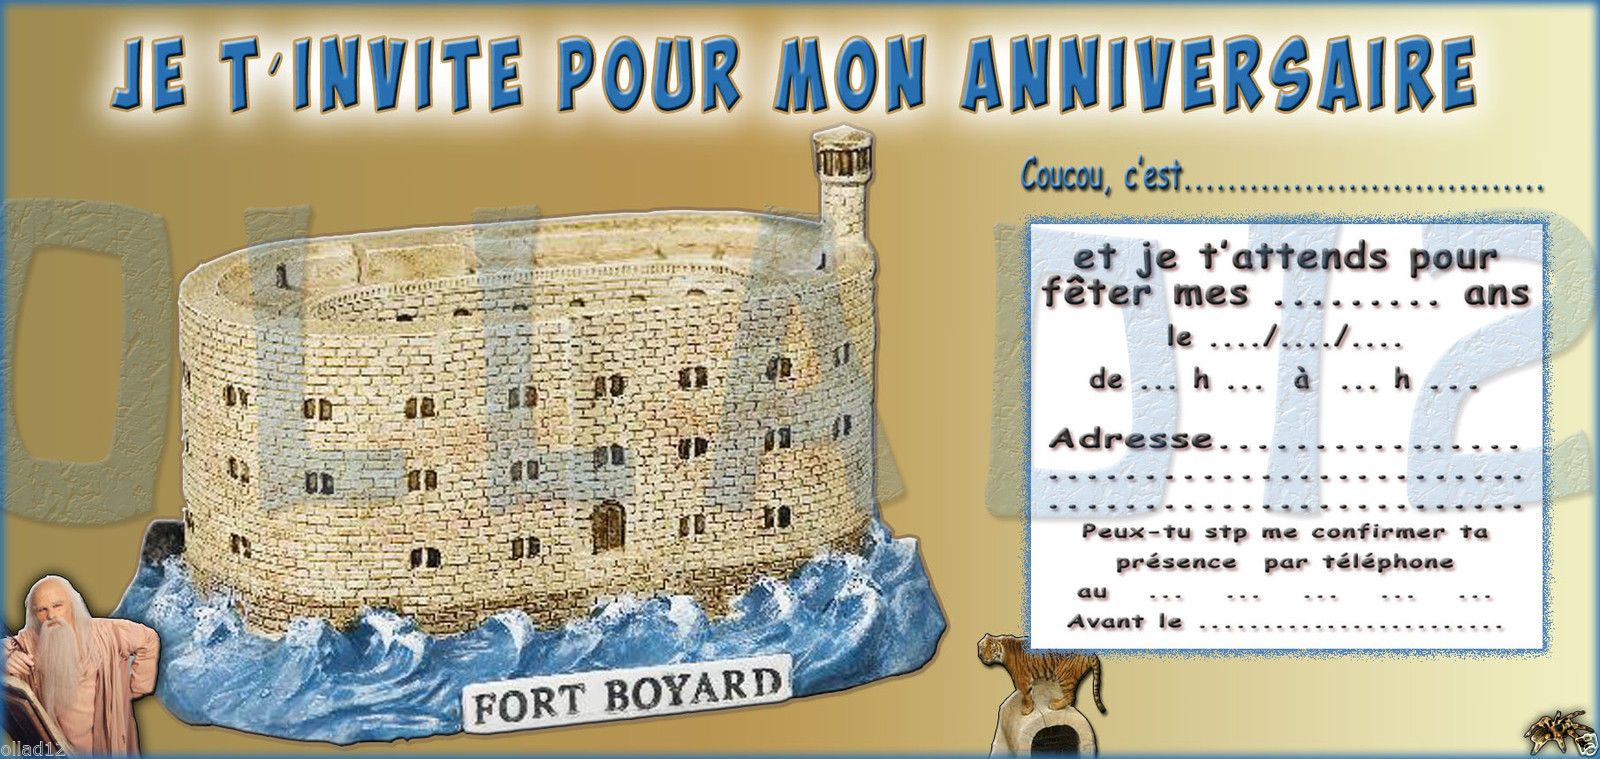 6 cartes invitation anniversaire fort boyard papier 250. Black Bedroom Furniture Sets. Home Design Ideas